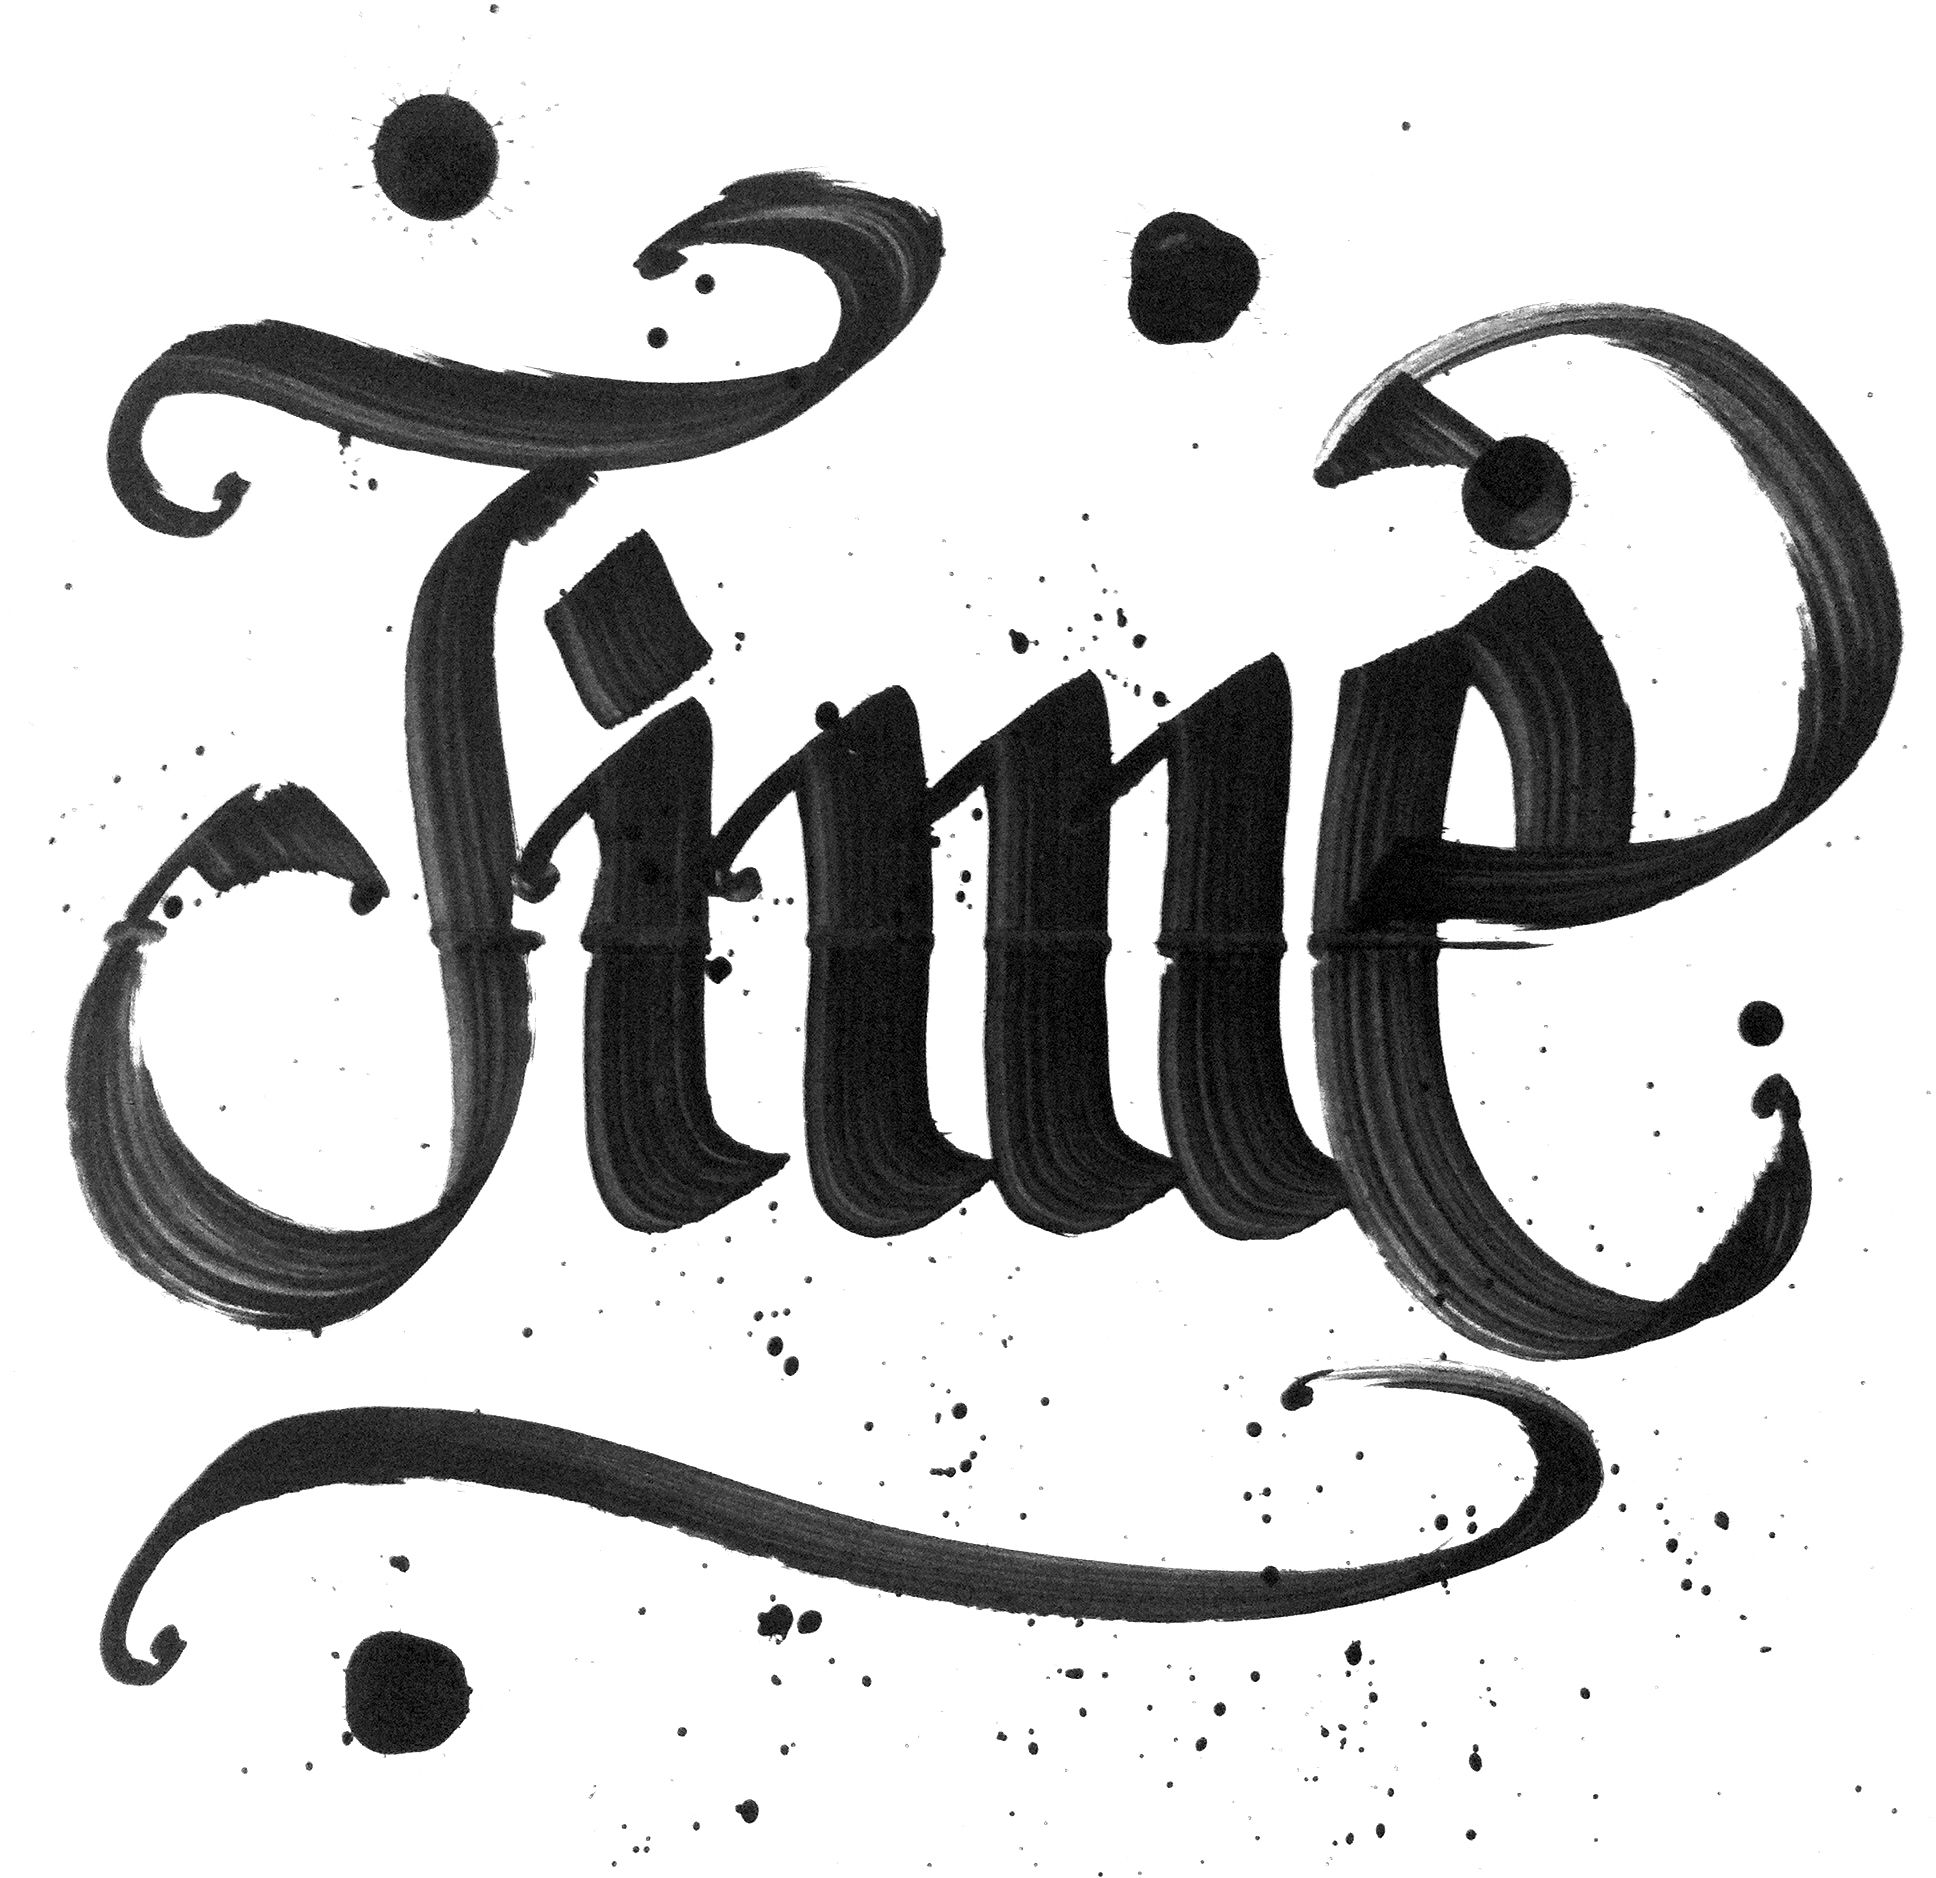 time word of the day calligraphie calligraffiti kalligraphie kalligraffiti kalligraphie. Black Bedroom Furniture Sets. Home Design Ideas